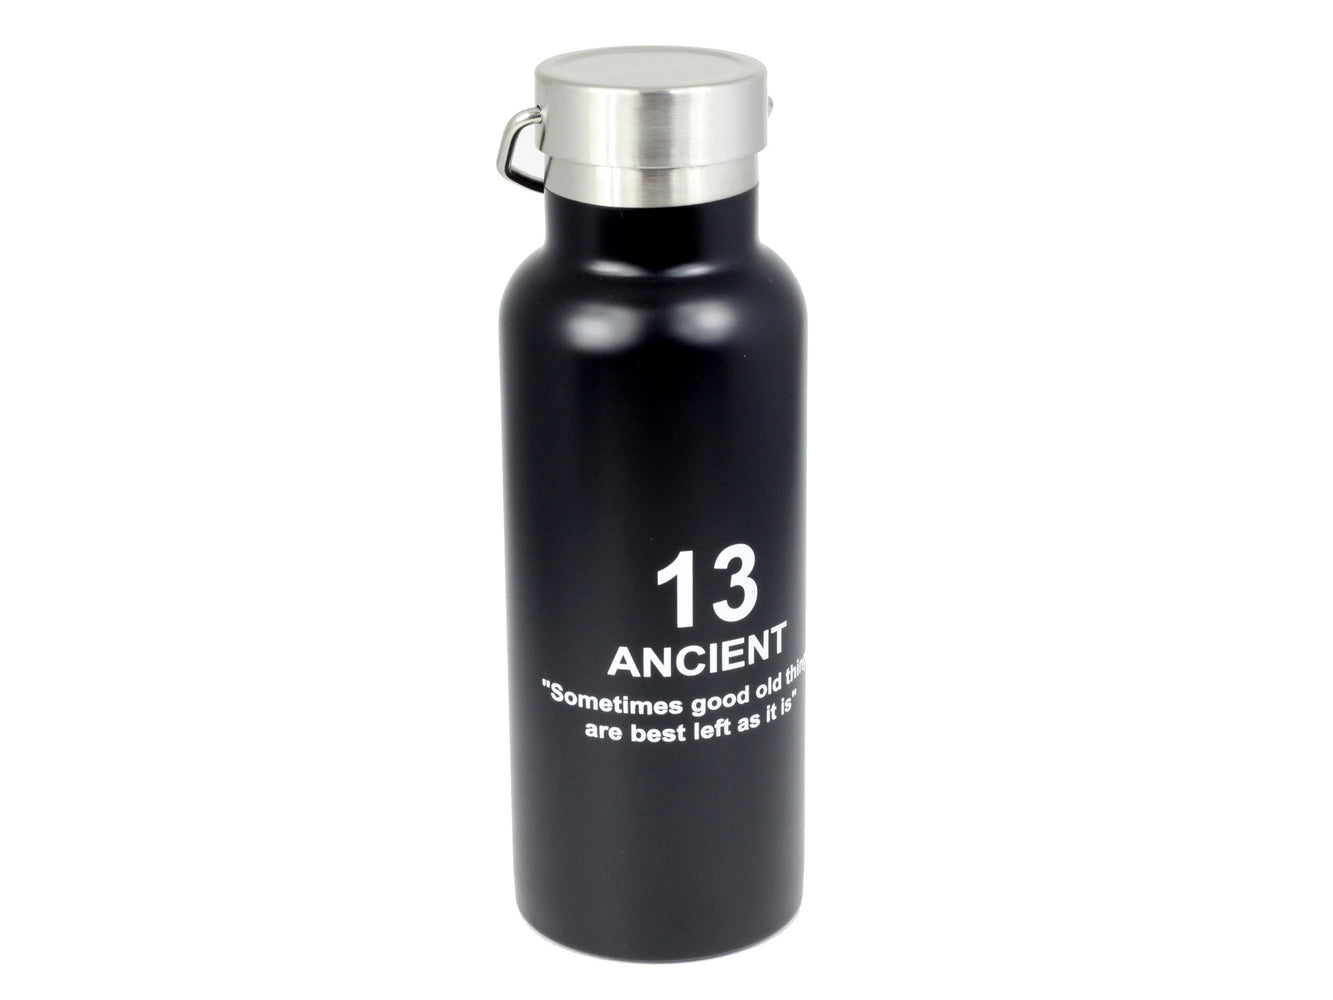 Ancient Stainless Bottle | Black by Showa - Bento&con the Bento Boxes specialist from Kyoto